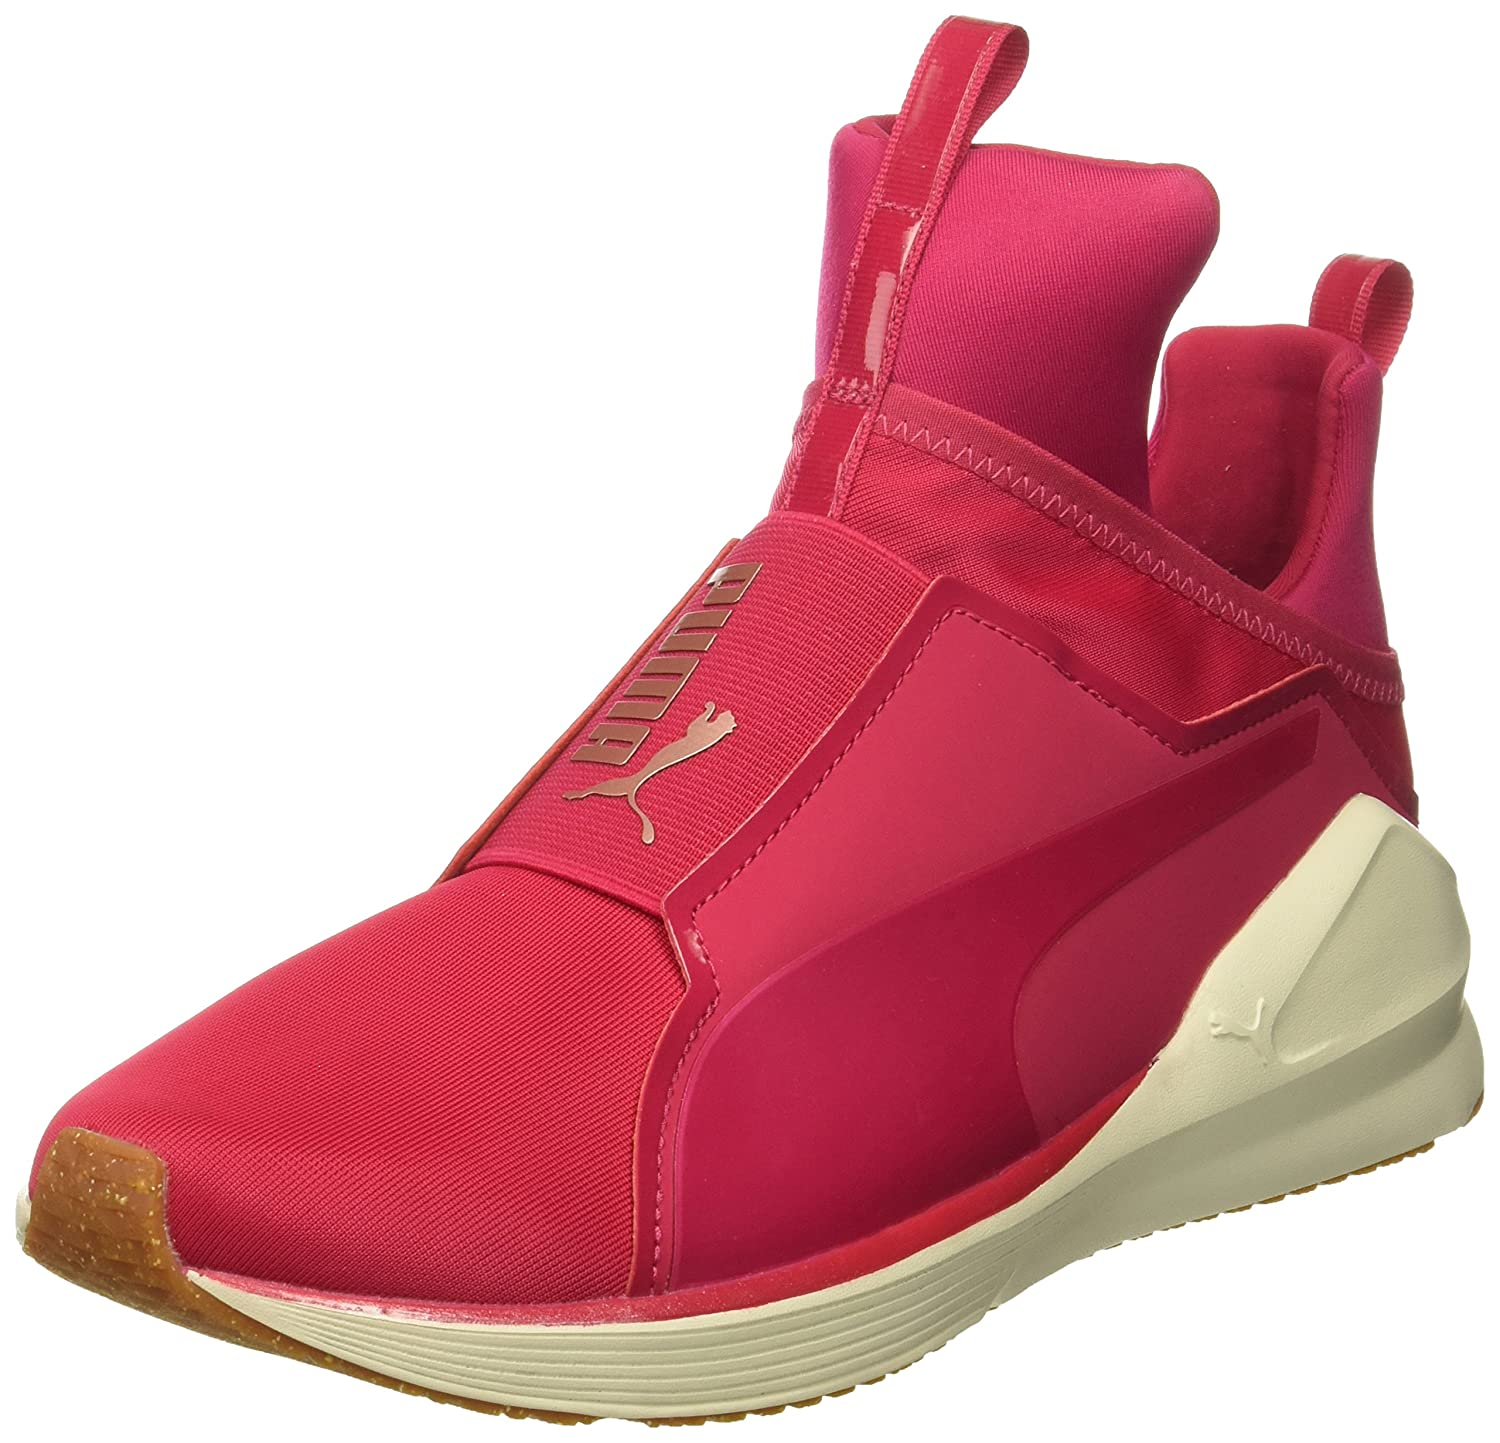 PUMA Women's Fierce VR Wn Sneaker B01N1SV8K8 8 B(M) US|Pink Love Potion/Whisper White